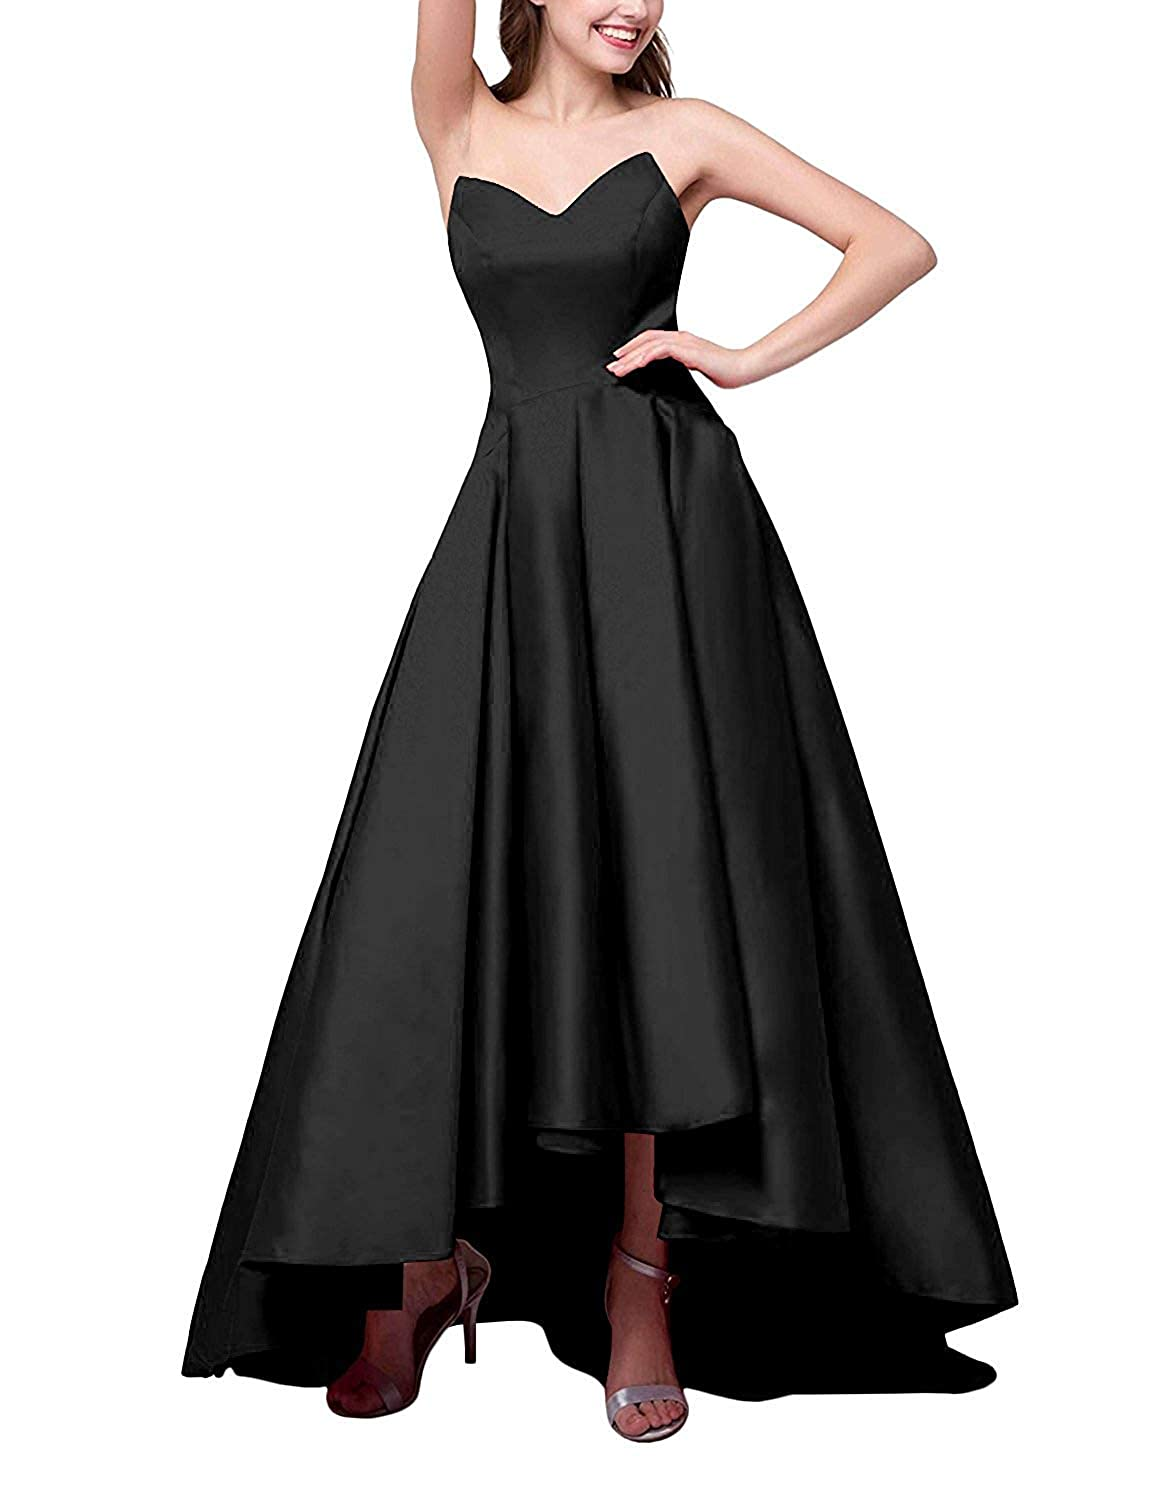 Black ZLQQ Women's V Neck Satin High Low Prom Dresses with Pockets Formal LongEvening Party Gowns